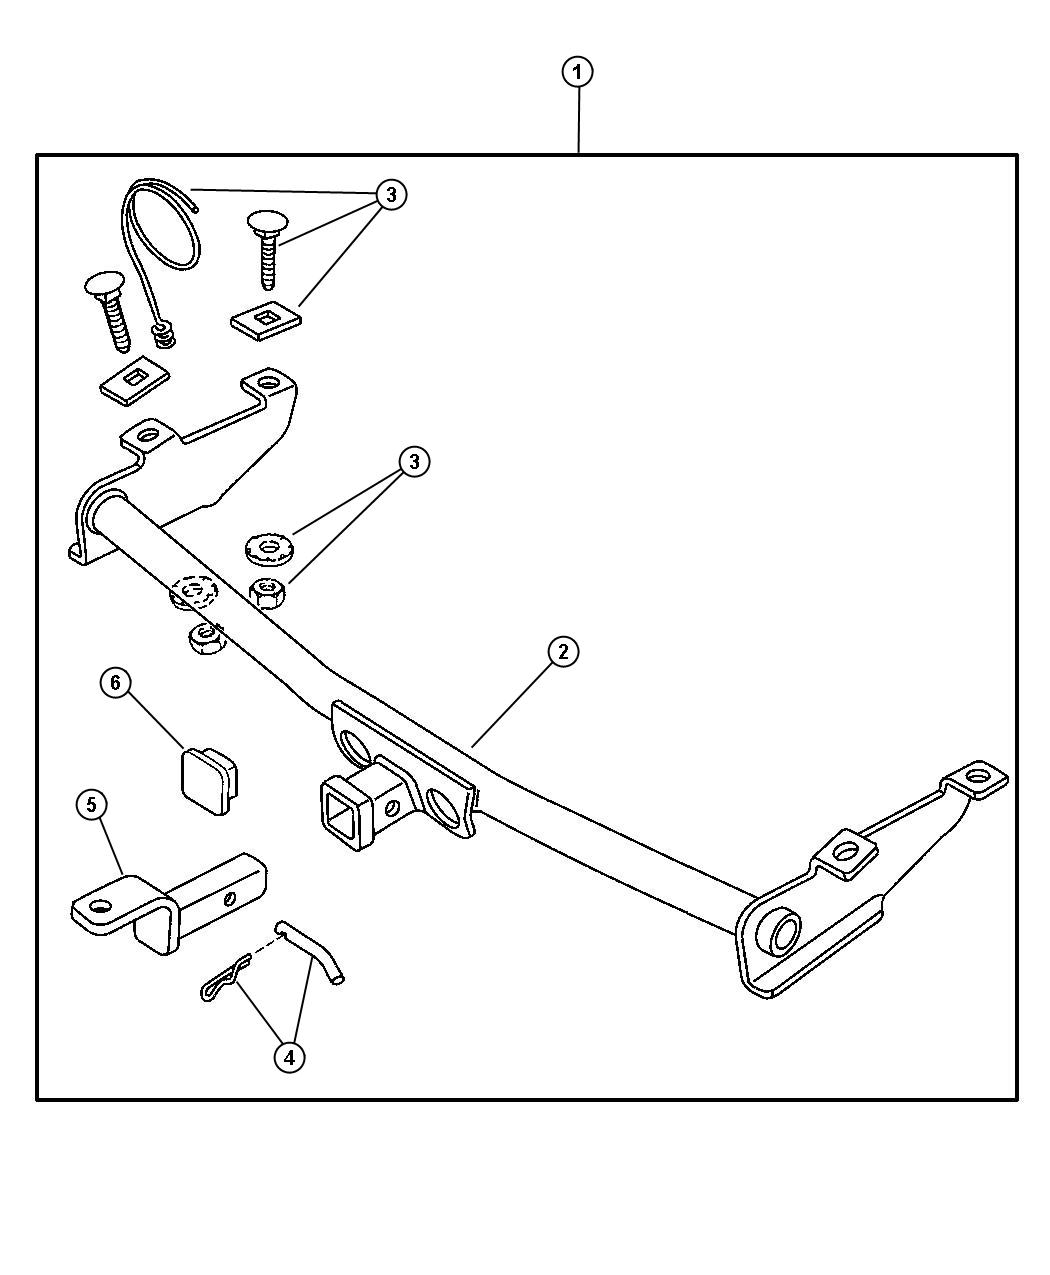 Receiver Kit - Trailer Tow. Diagram